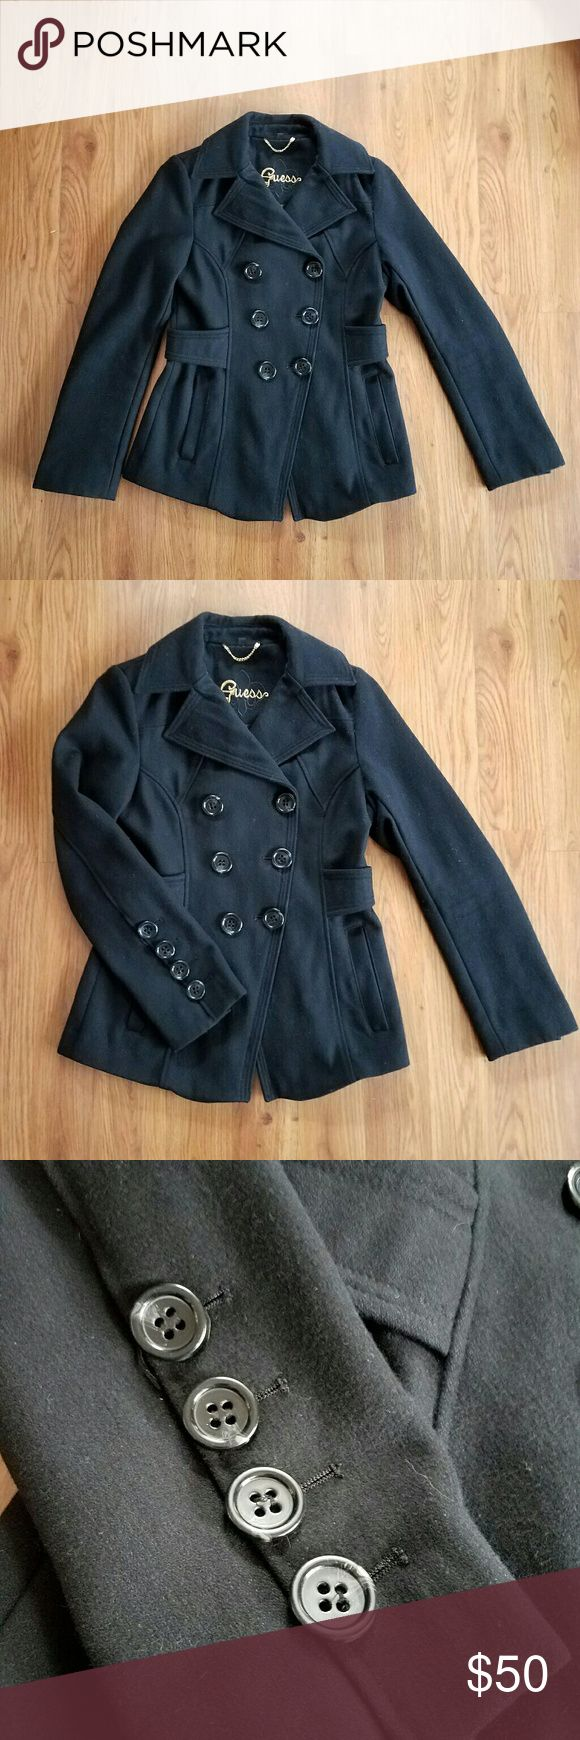 Guess black wool pea coat Excellent used condition. Wool / polyestor blend. Waist length. Beautiful button detail on sleeves. Working pockets. Guess Jackets & Coats Pea Coats